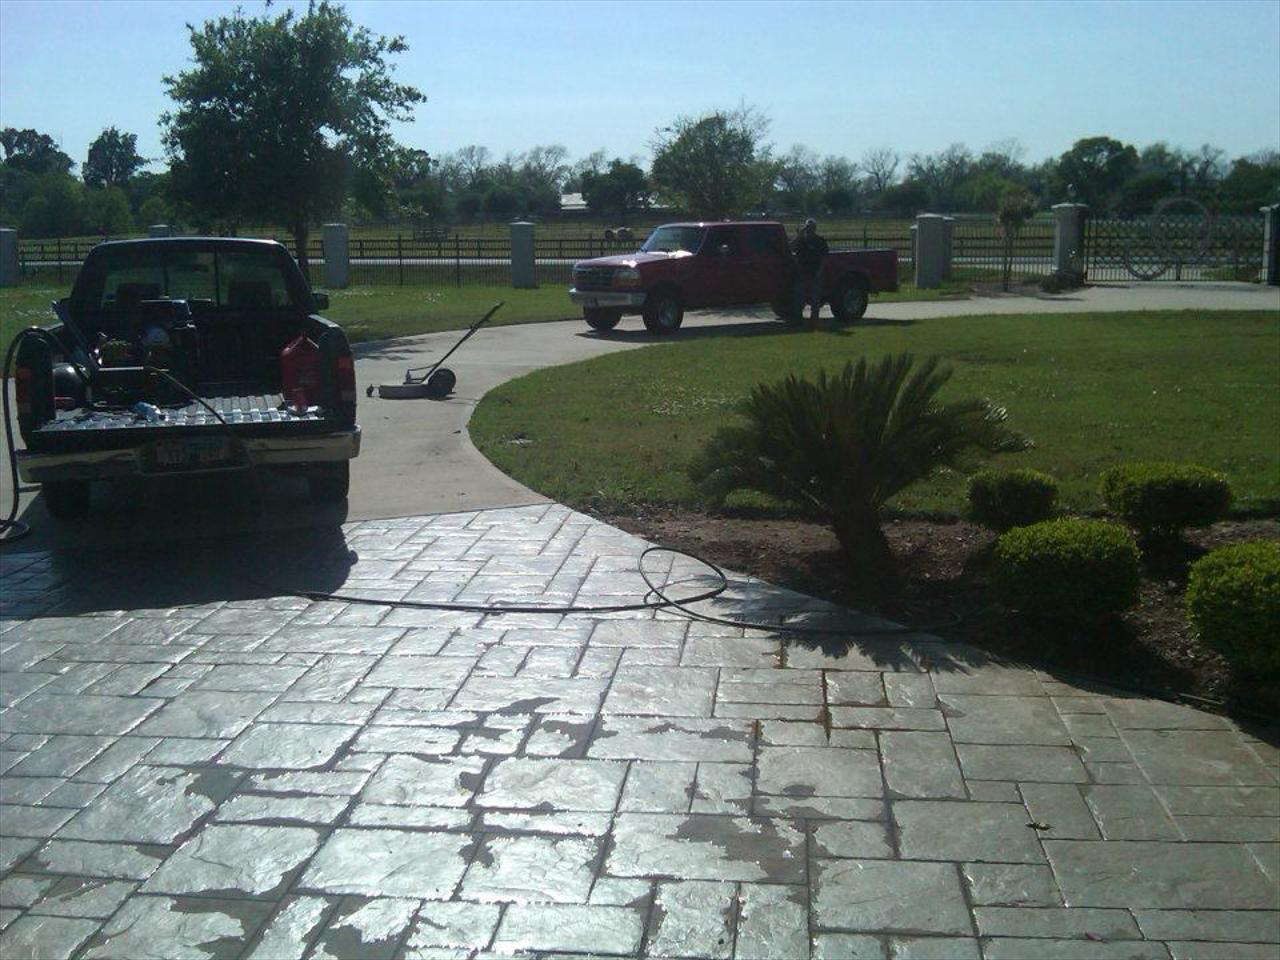 We use high pressure to pressure wash driveways and paver driveways in Temple and the surrounding areas